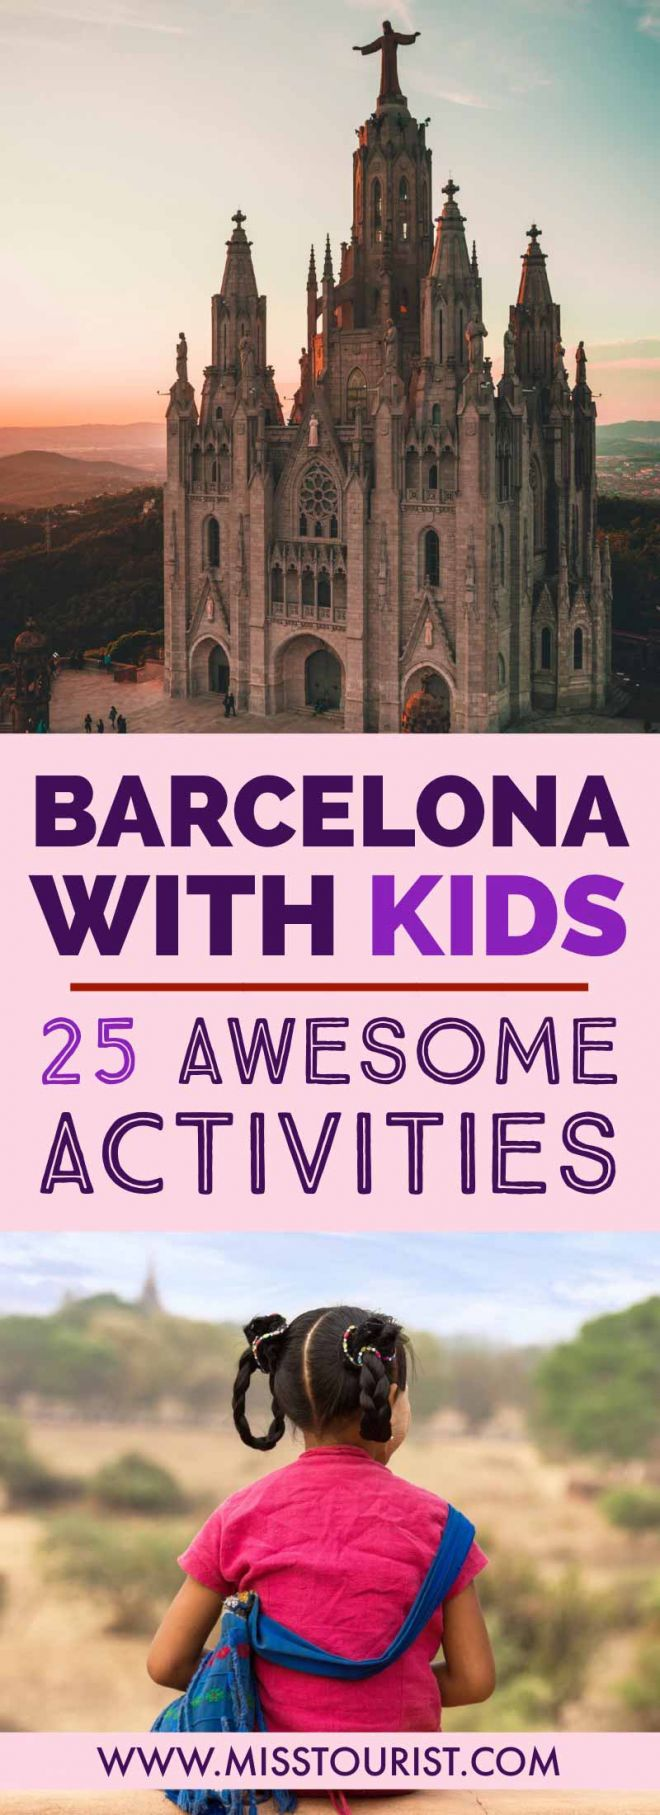 Barcelona With Kids 25 Awesome Things To Do pin it 2